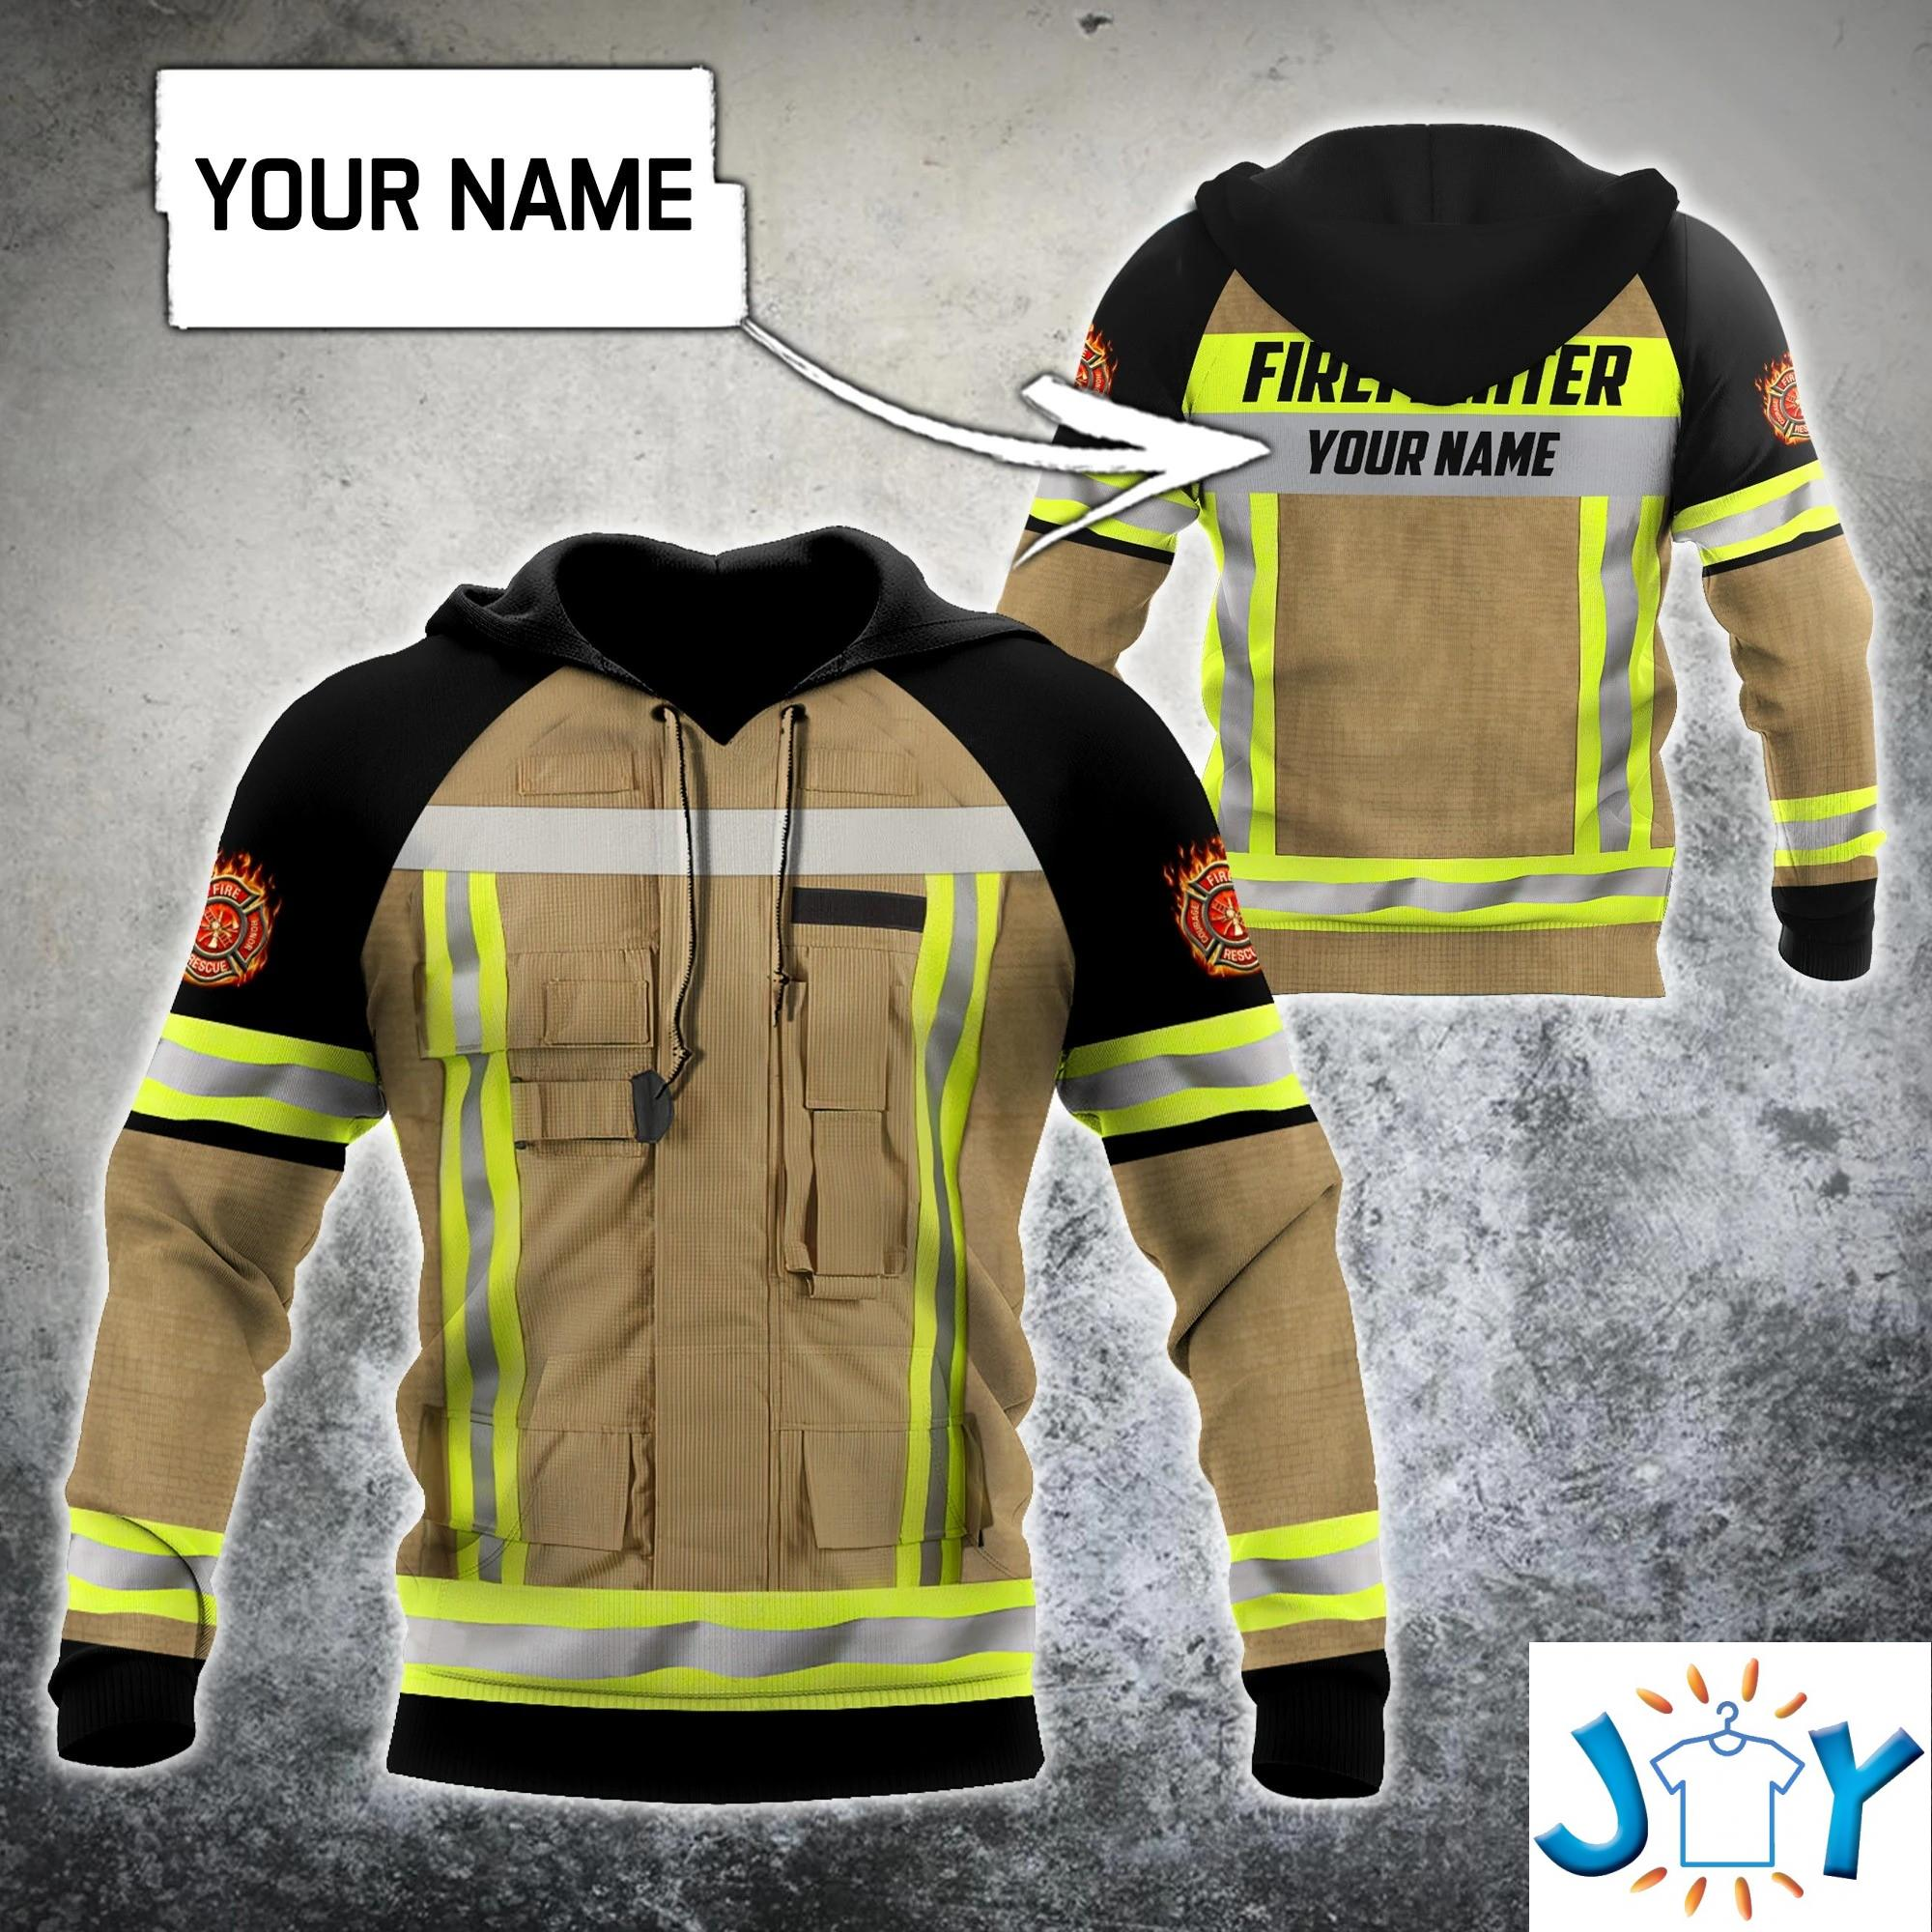 Firefighter Costume Personalized 3D All Printed Hoodie